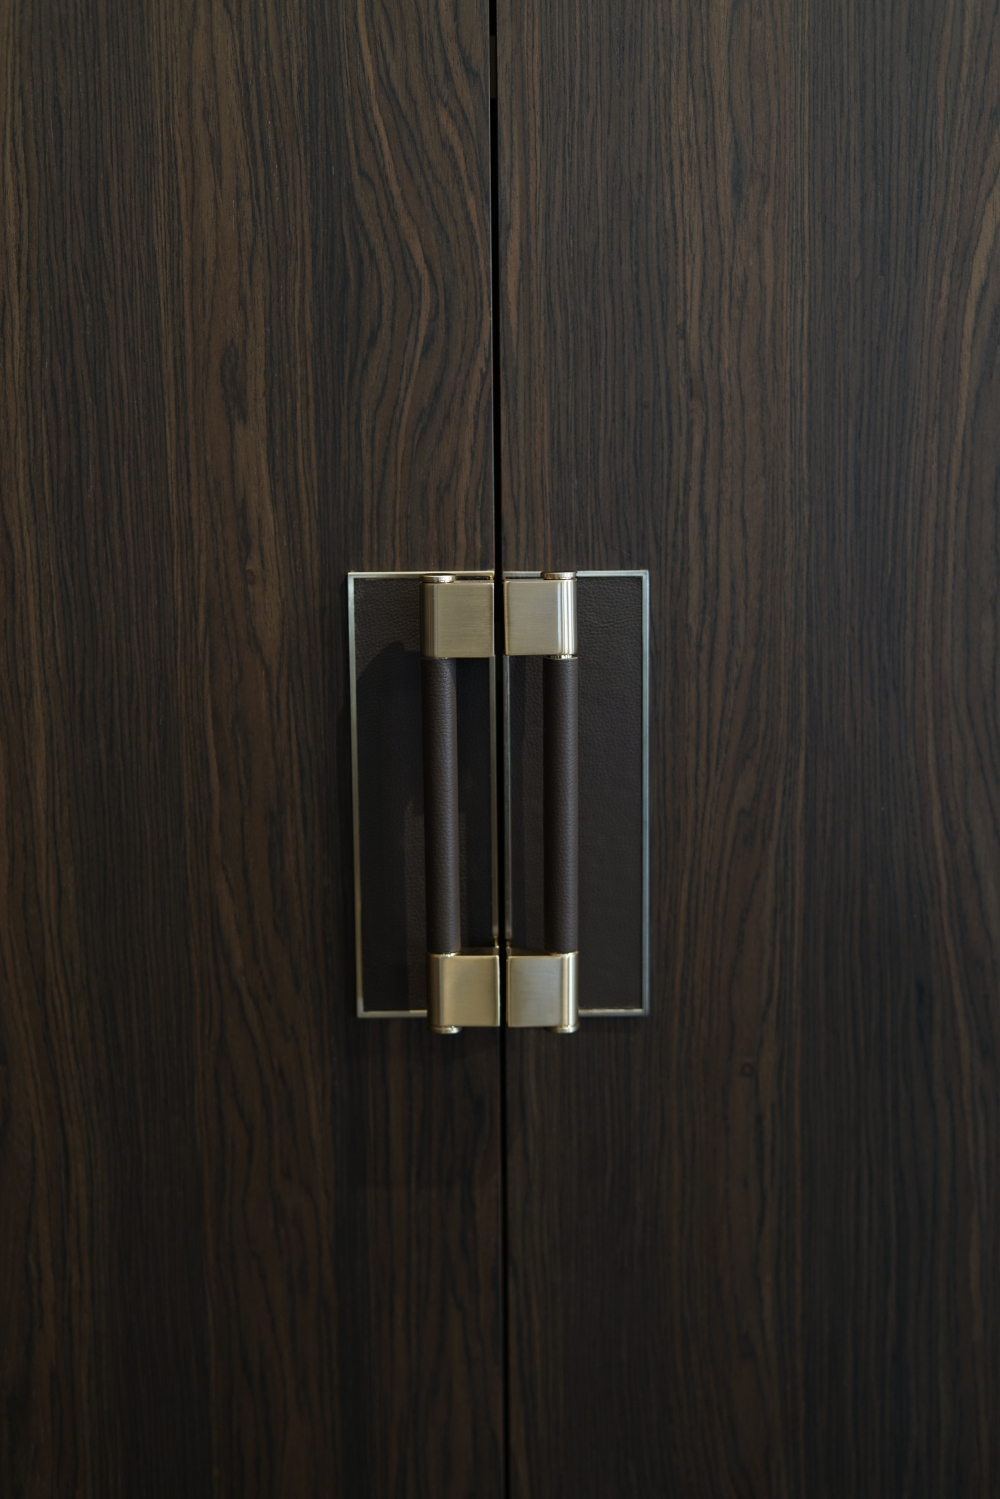 door-handle-interior-designer-miami-ft-lauderdale-hallandale-beach-hollywood-fl-florida